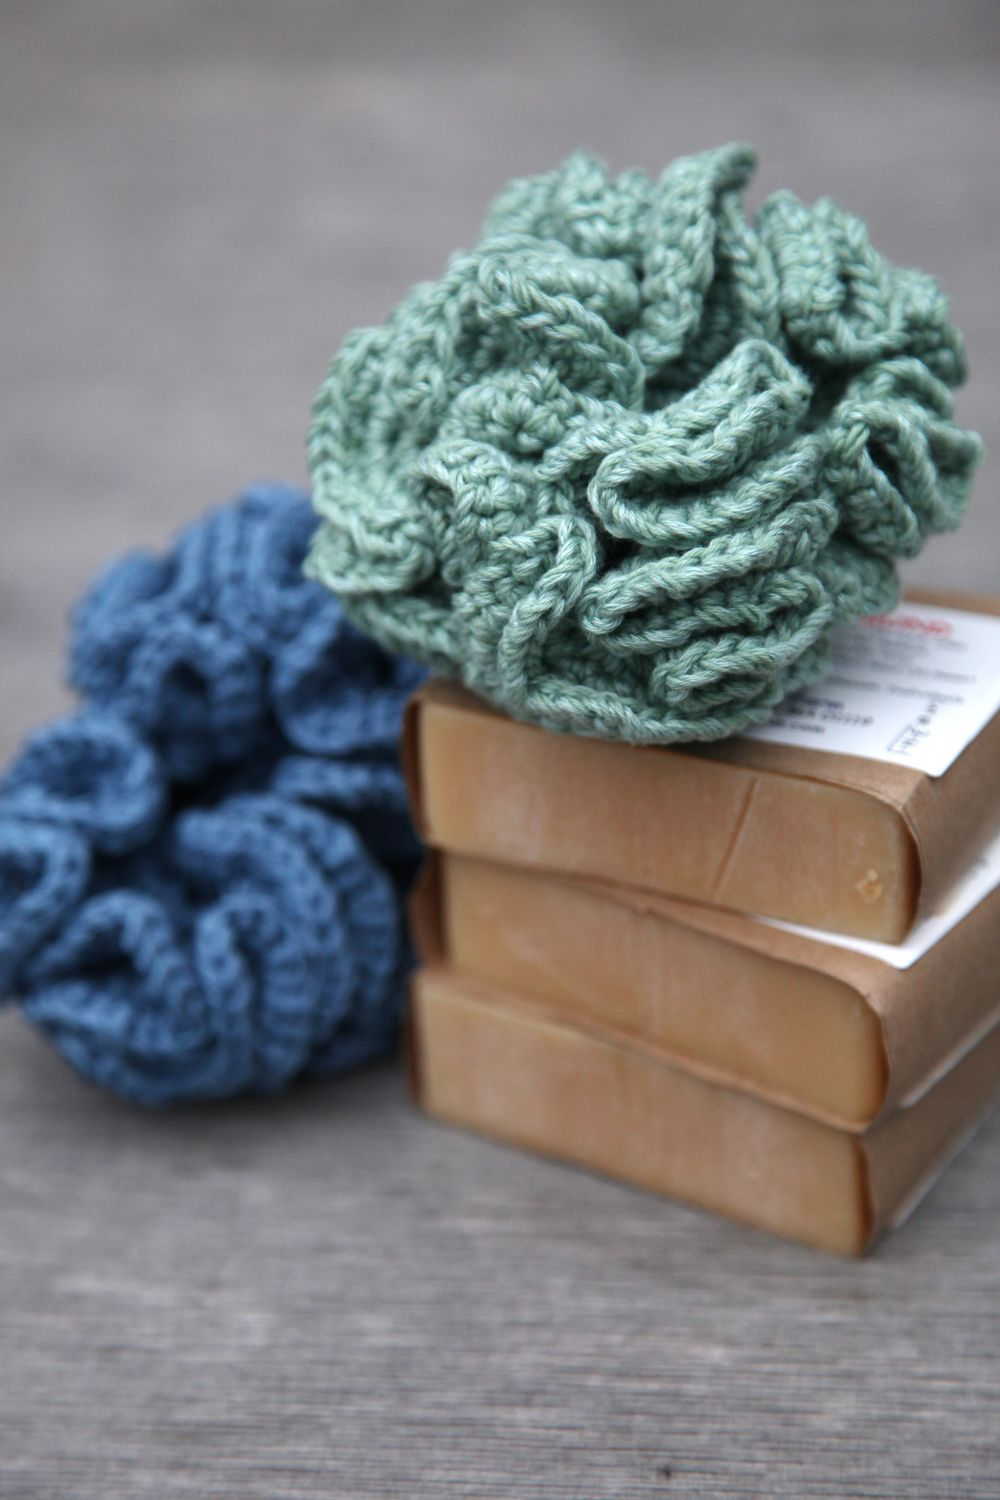 Crocheted bath puffs/kitchen scrubbies paired with a nice bar of ...